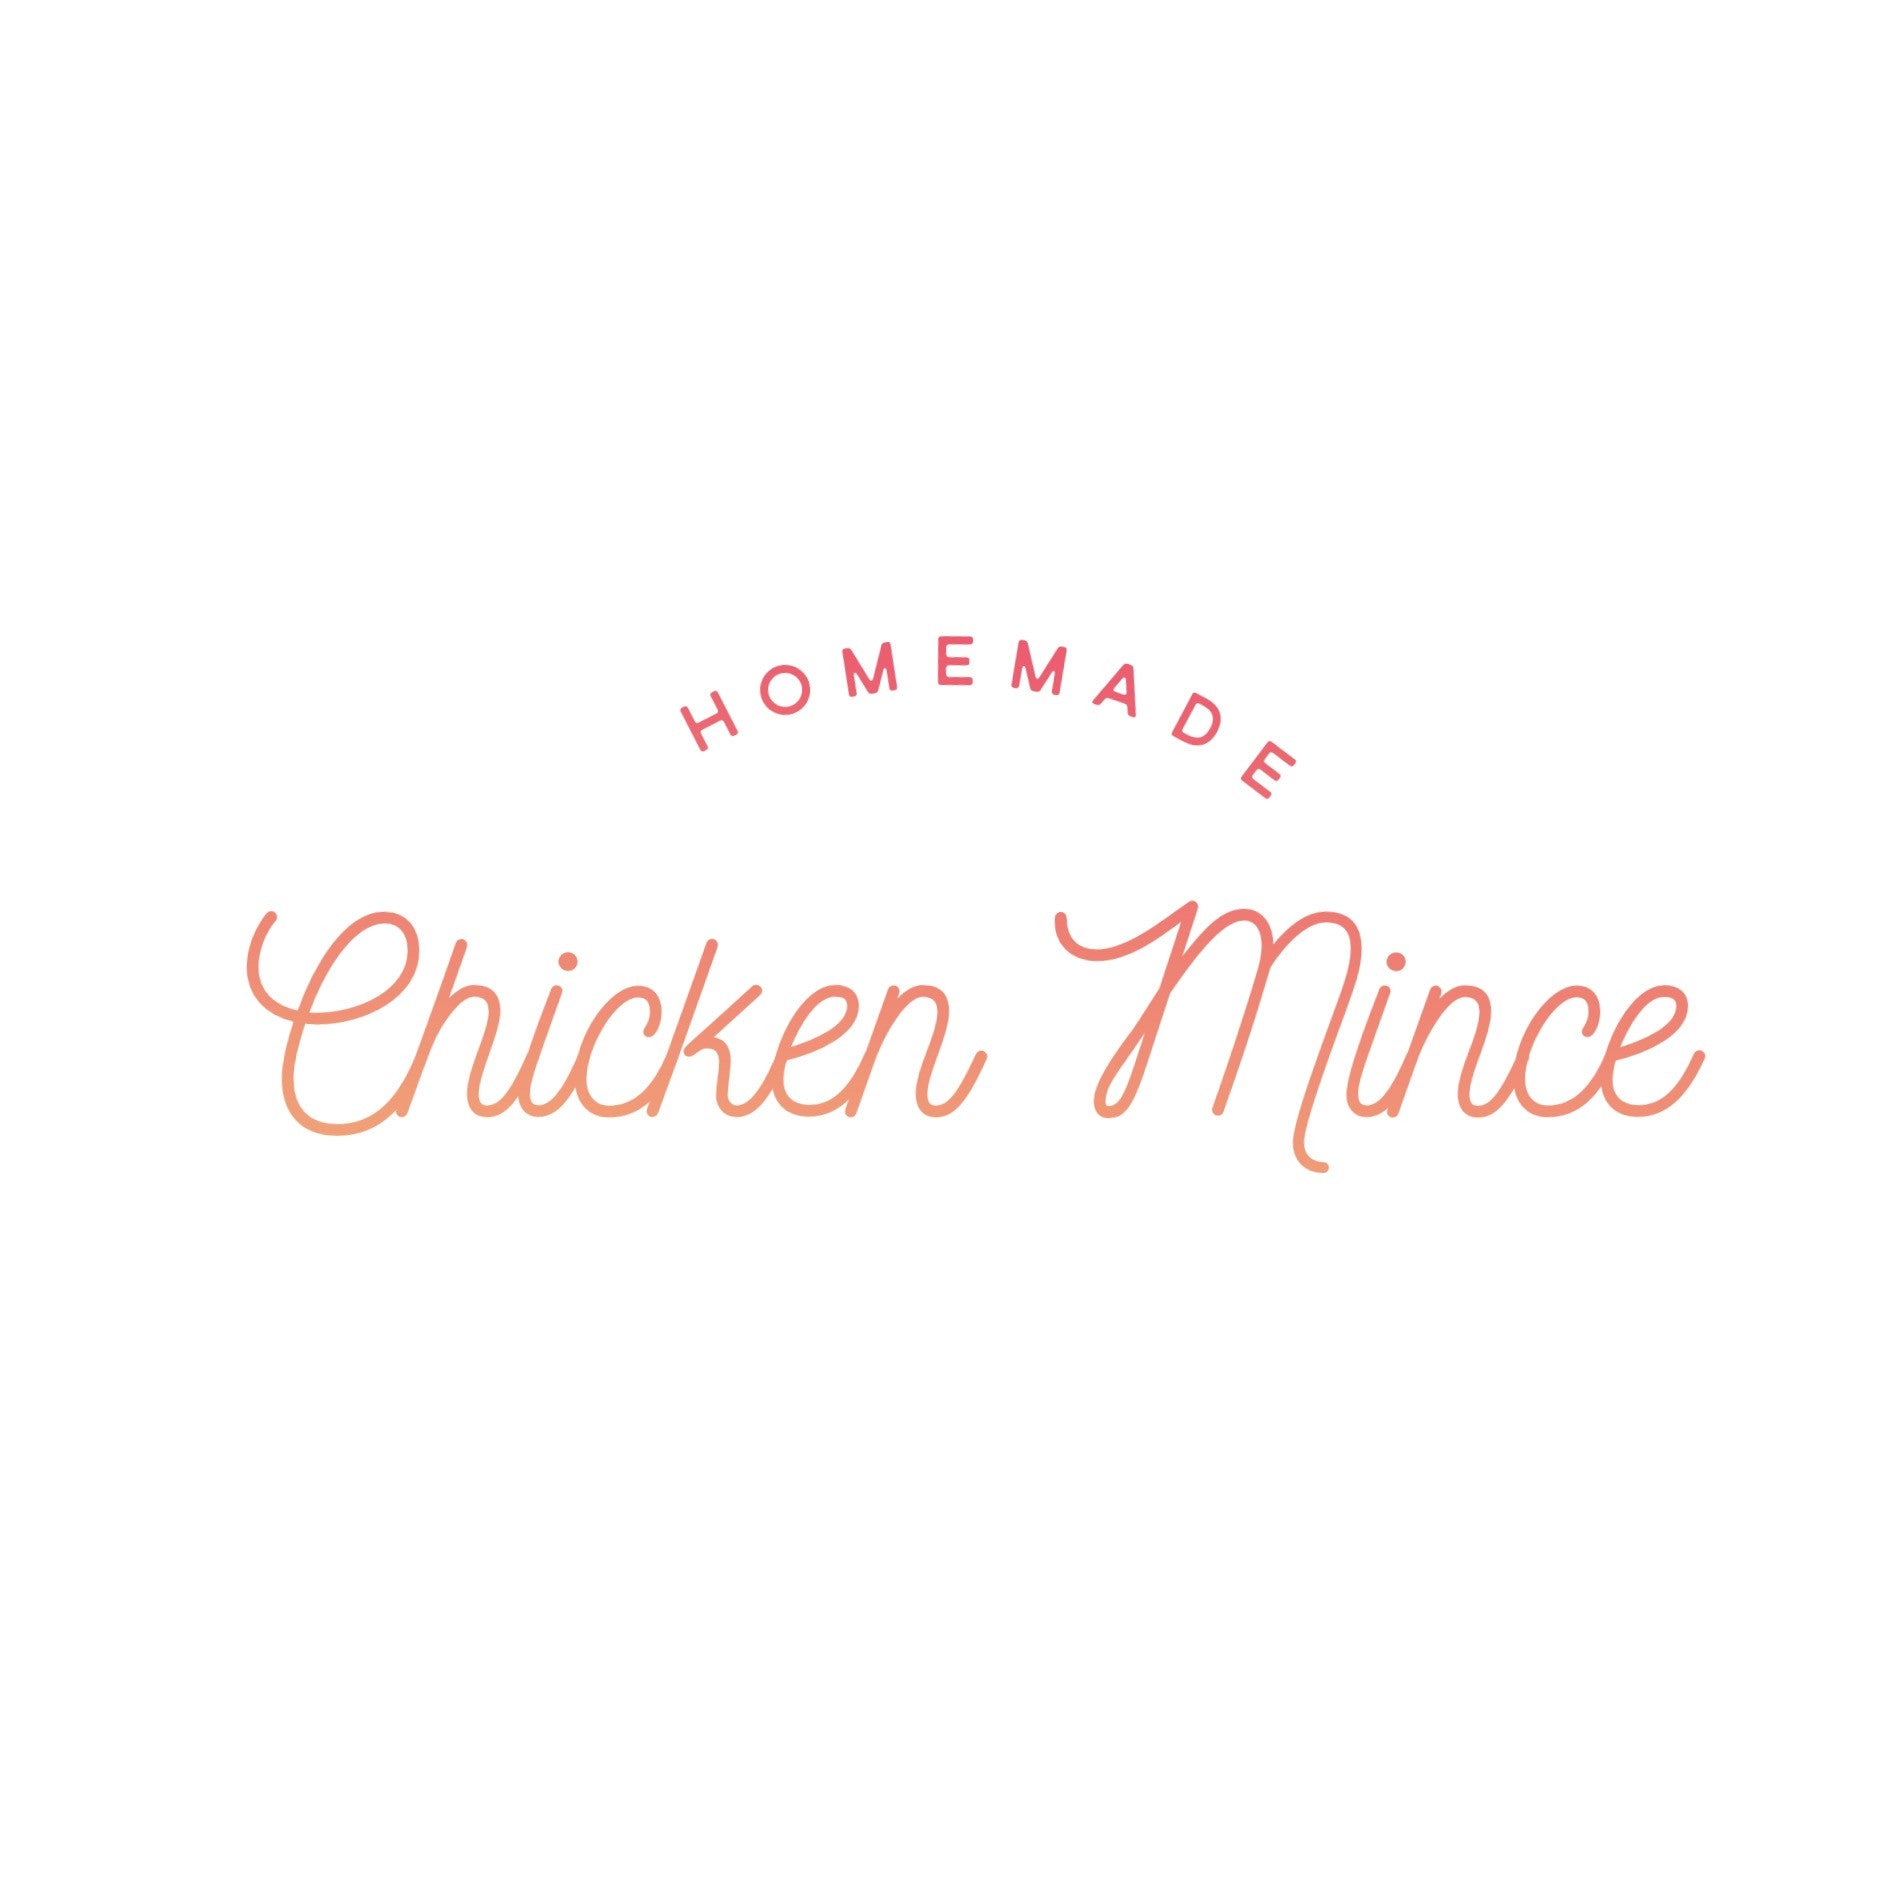 How To: Make your own chicken mince